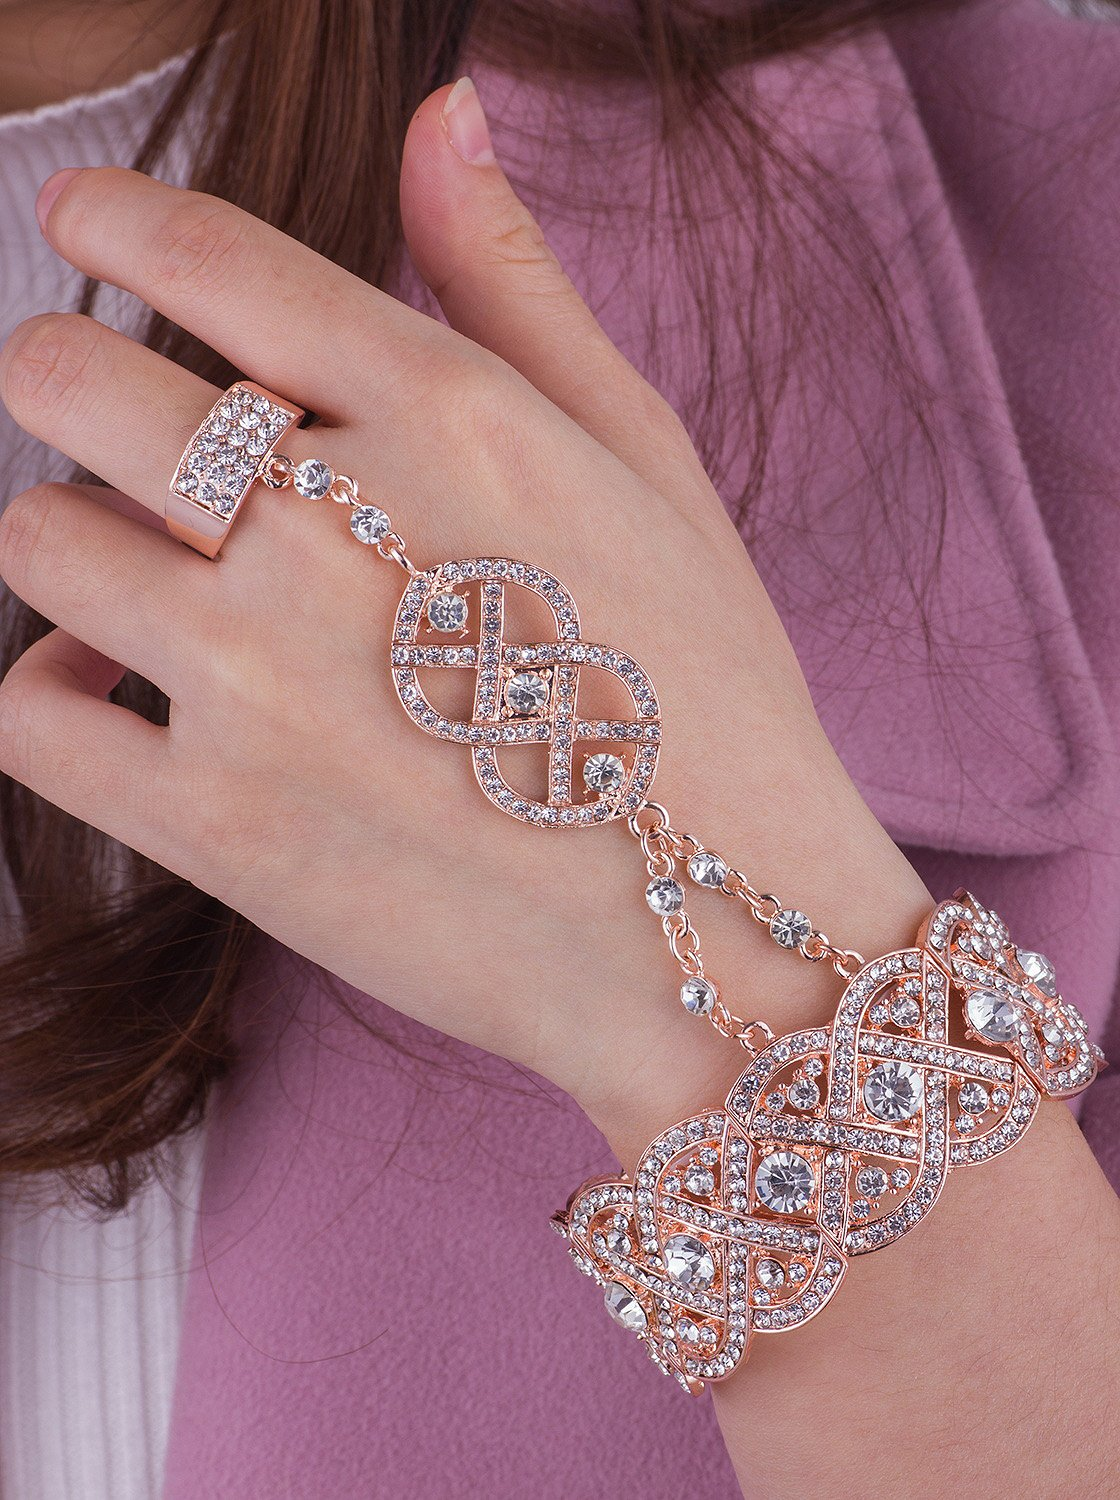 Vijiv Gold 1920s Flapper accessories Bracelet Ring Set Great Gatsby Style 20s Jewelry For Party by Vijiv (Image #2)